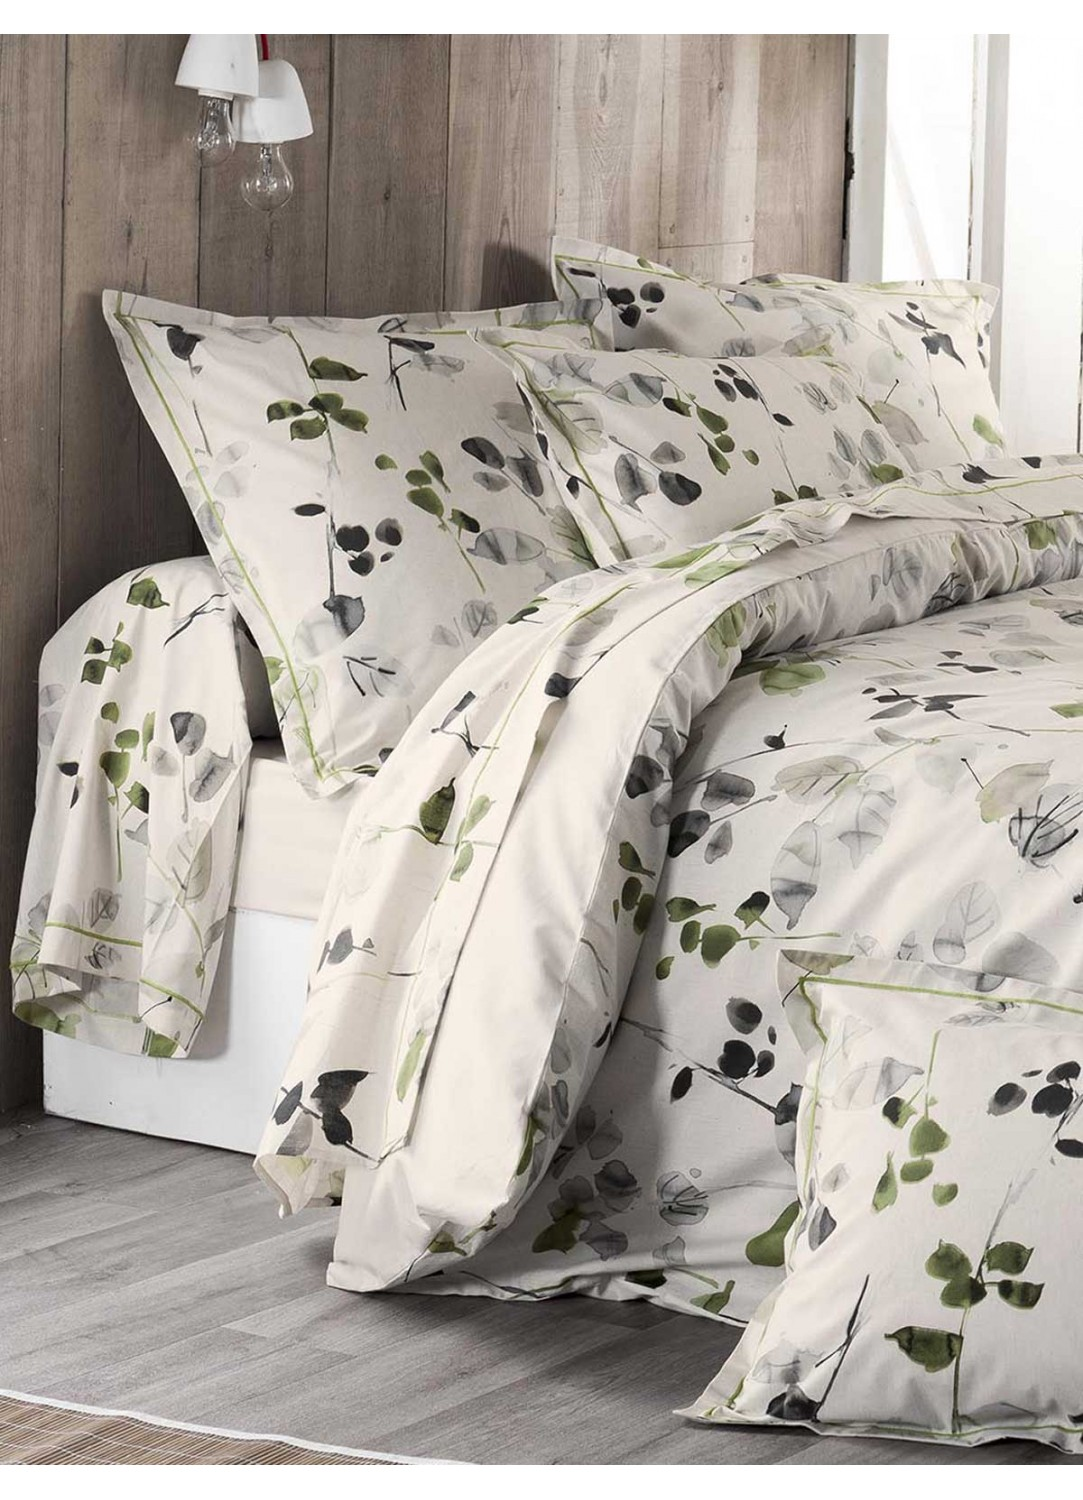 parure de draps 4 pi ces nature et feuillages ecru homemaison vente en ligne parures de lit. Black Bedroom Furniture Sets. Home Design Ideas